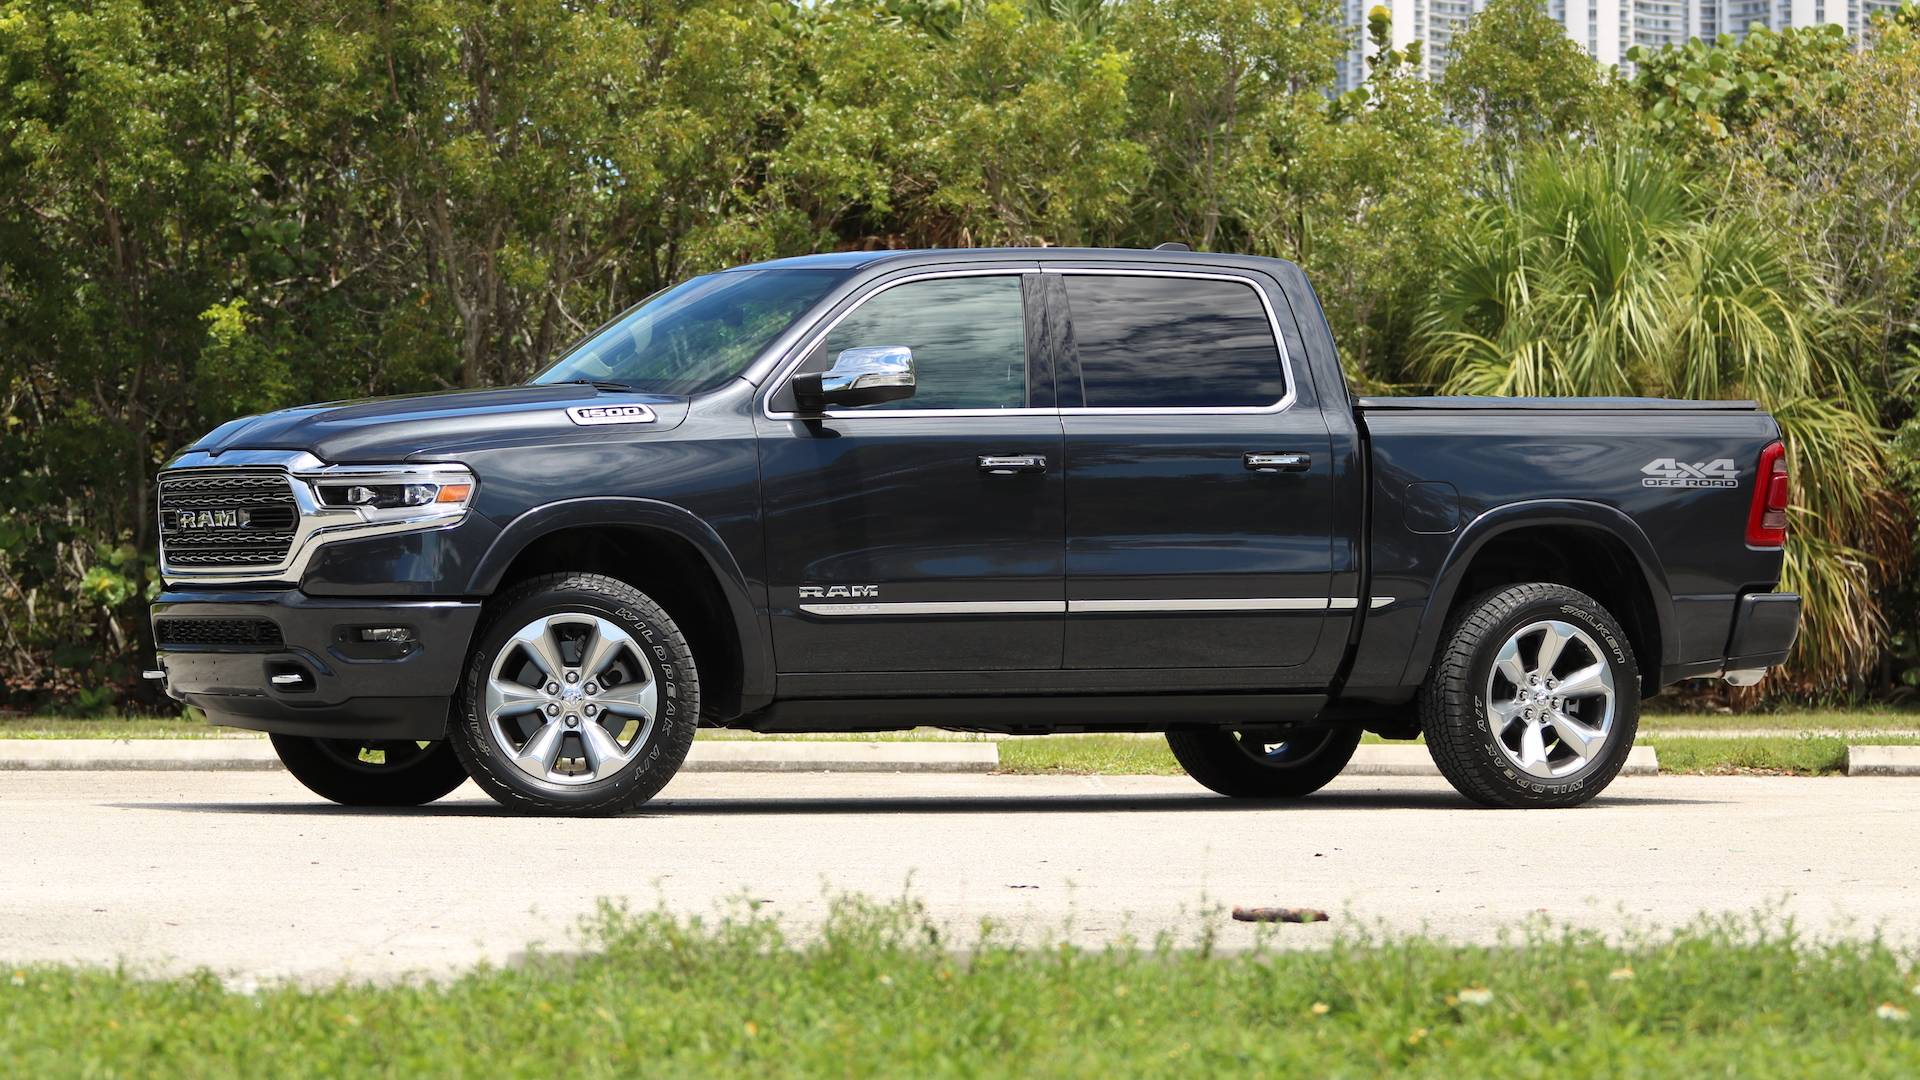 96440c5d 2019 Ram 1500 Limited Review: King Of The Hill